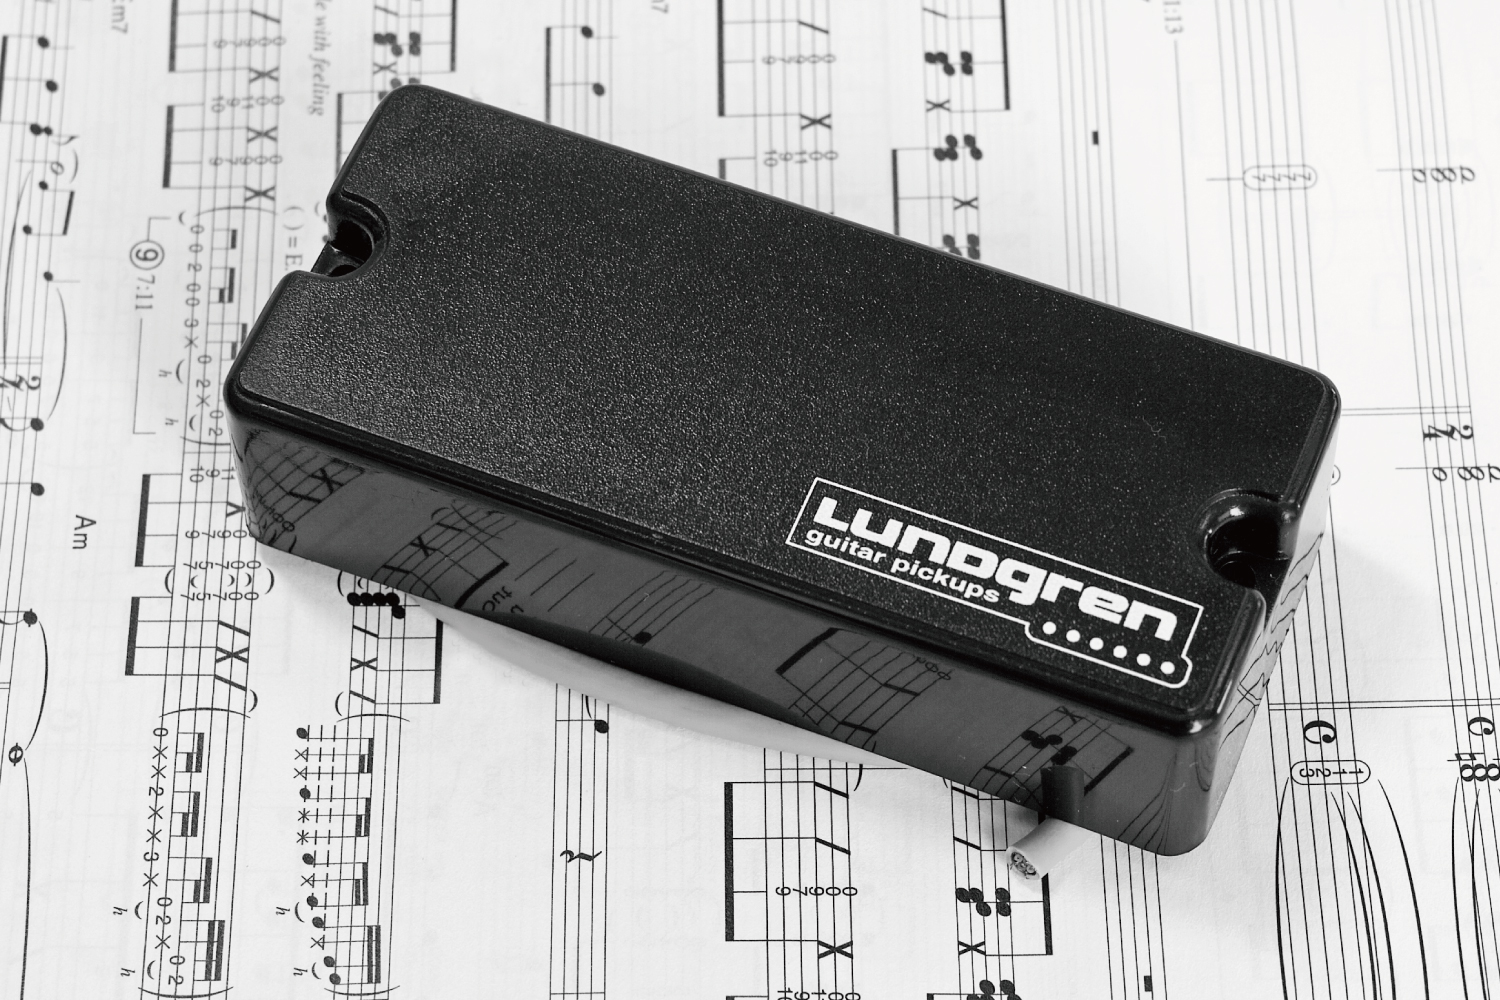 Lundgren Model M7C with cover 単品 / ブリッジ側